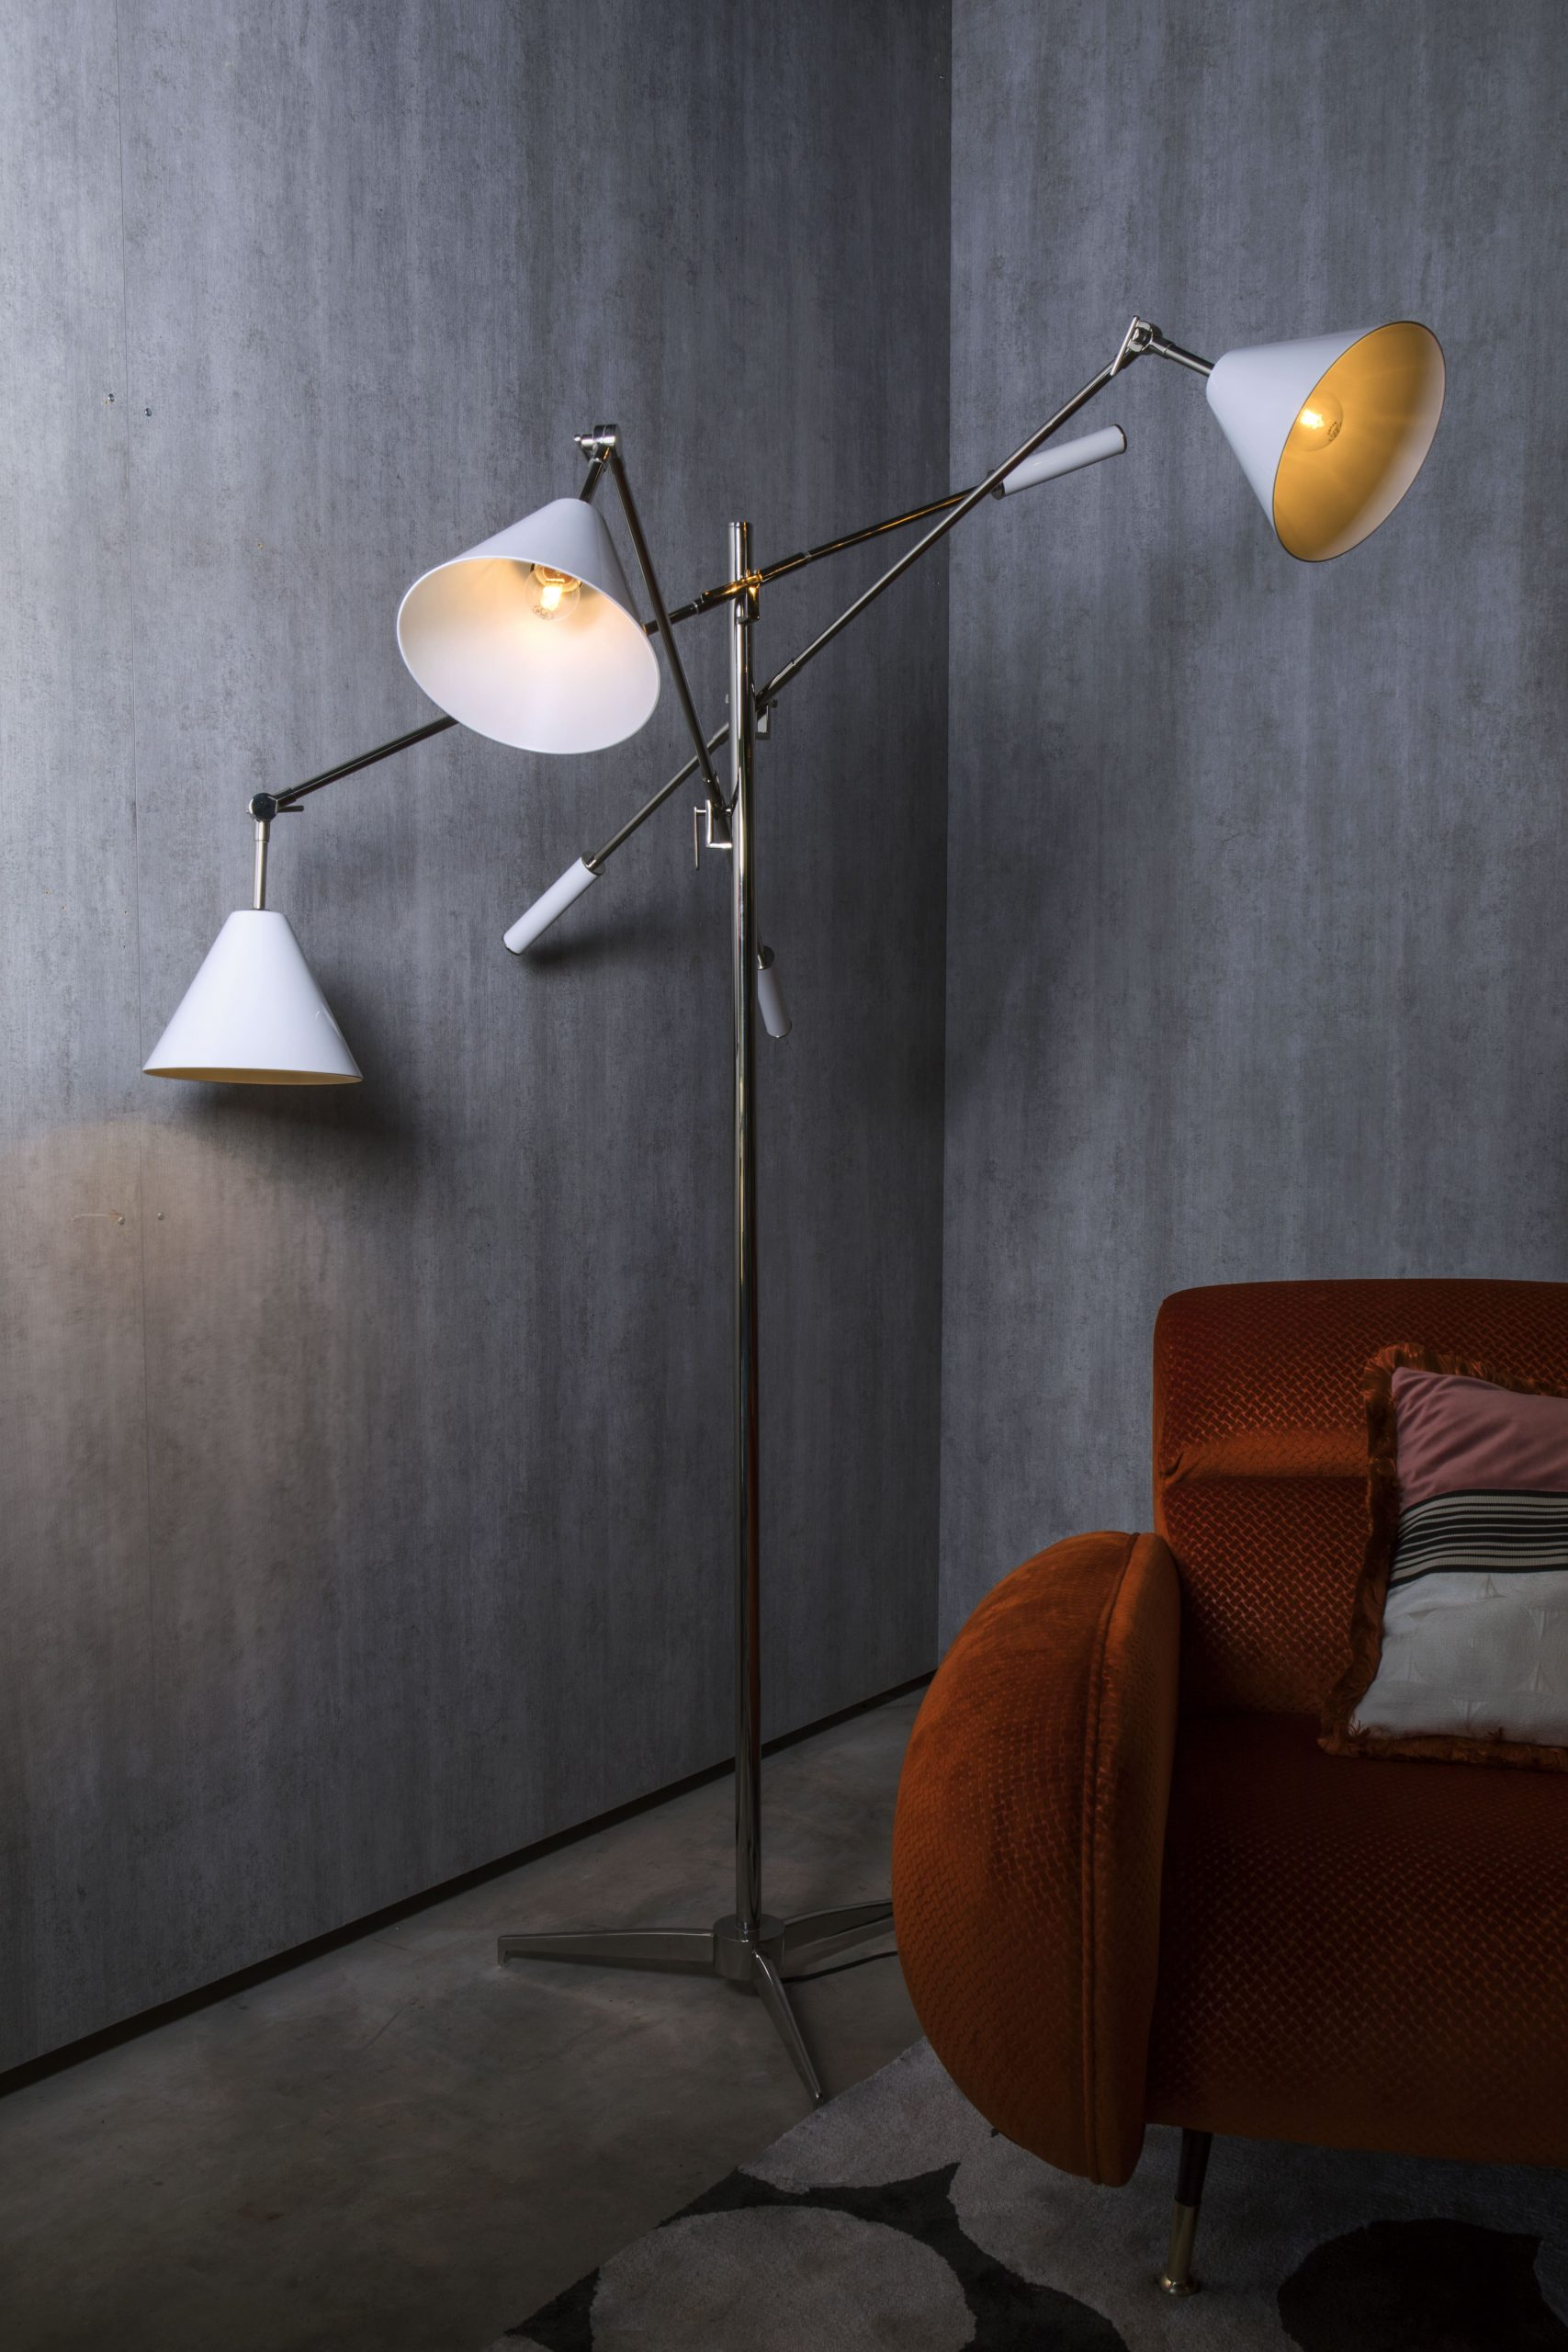 industrial modern home industrial modern home 4 Mid-Century Floor Lamps For Your Industrial Modern Home! 4 Mid Century Floor Lamps For Your Modern Industrial Home 1 scaled